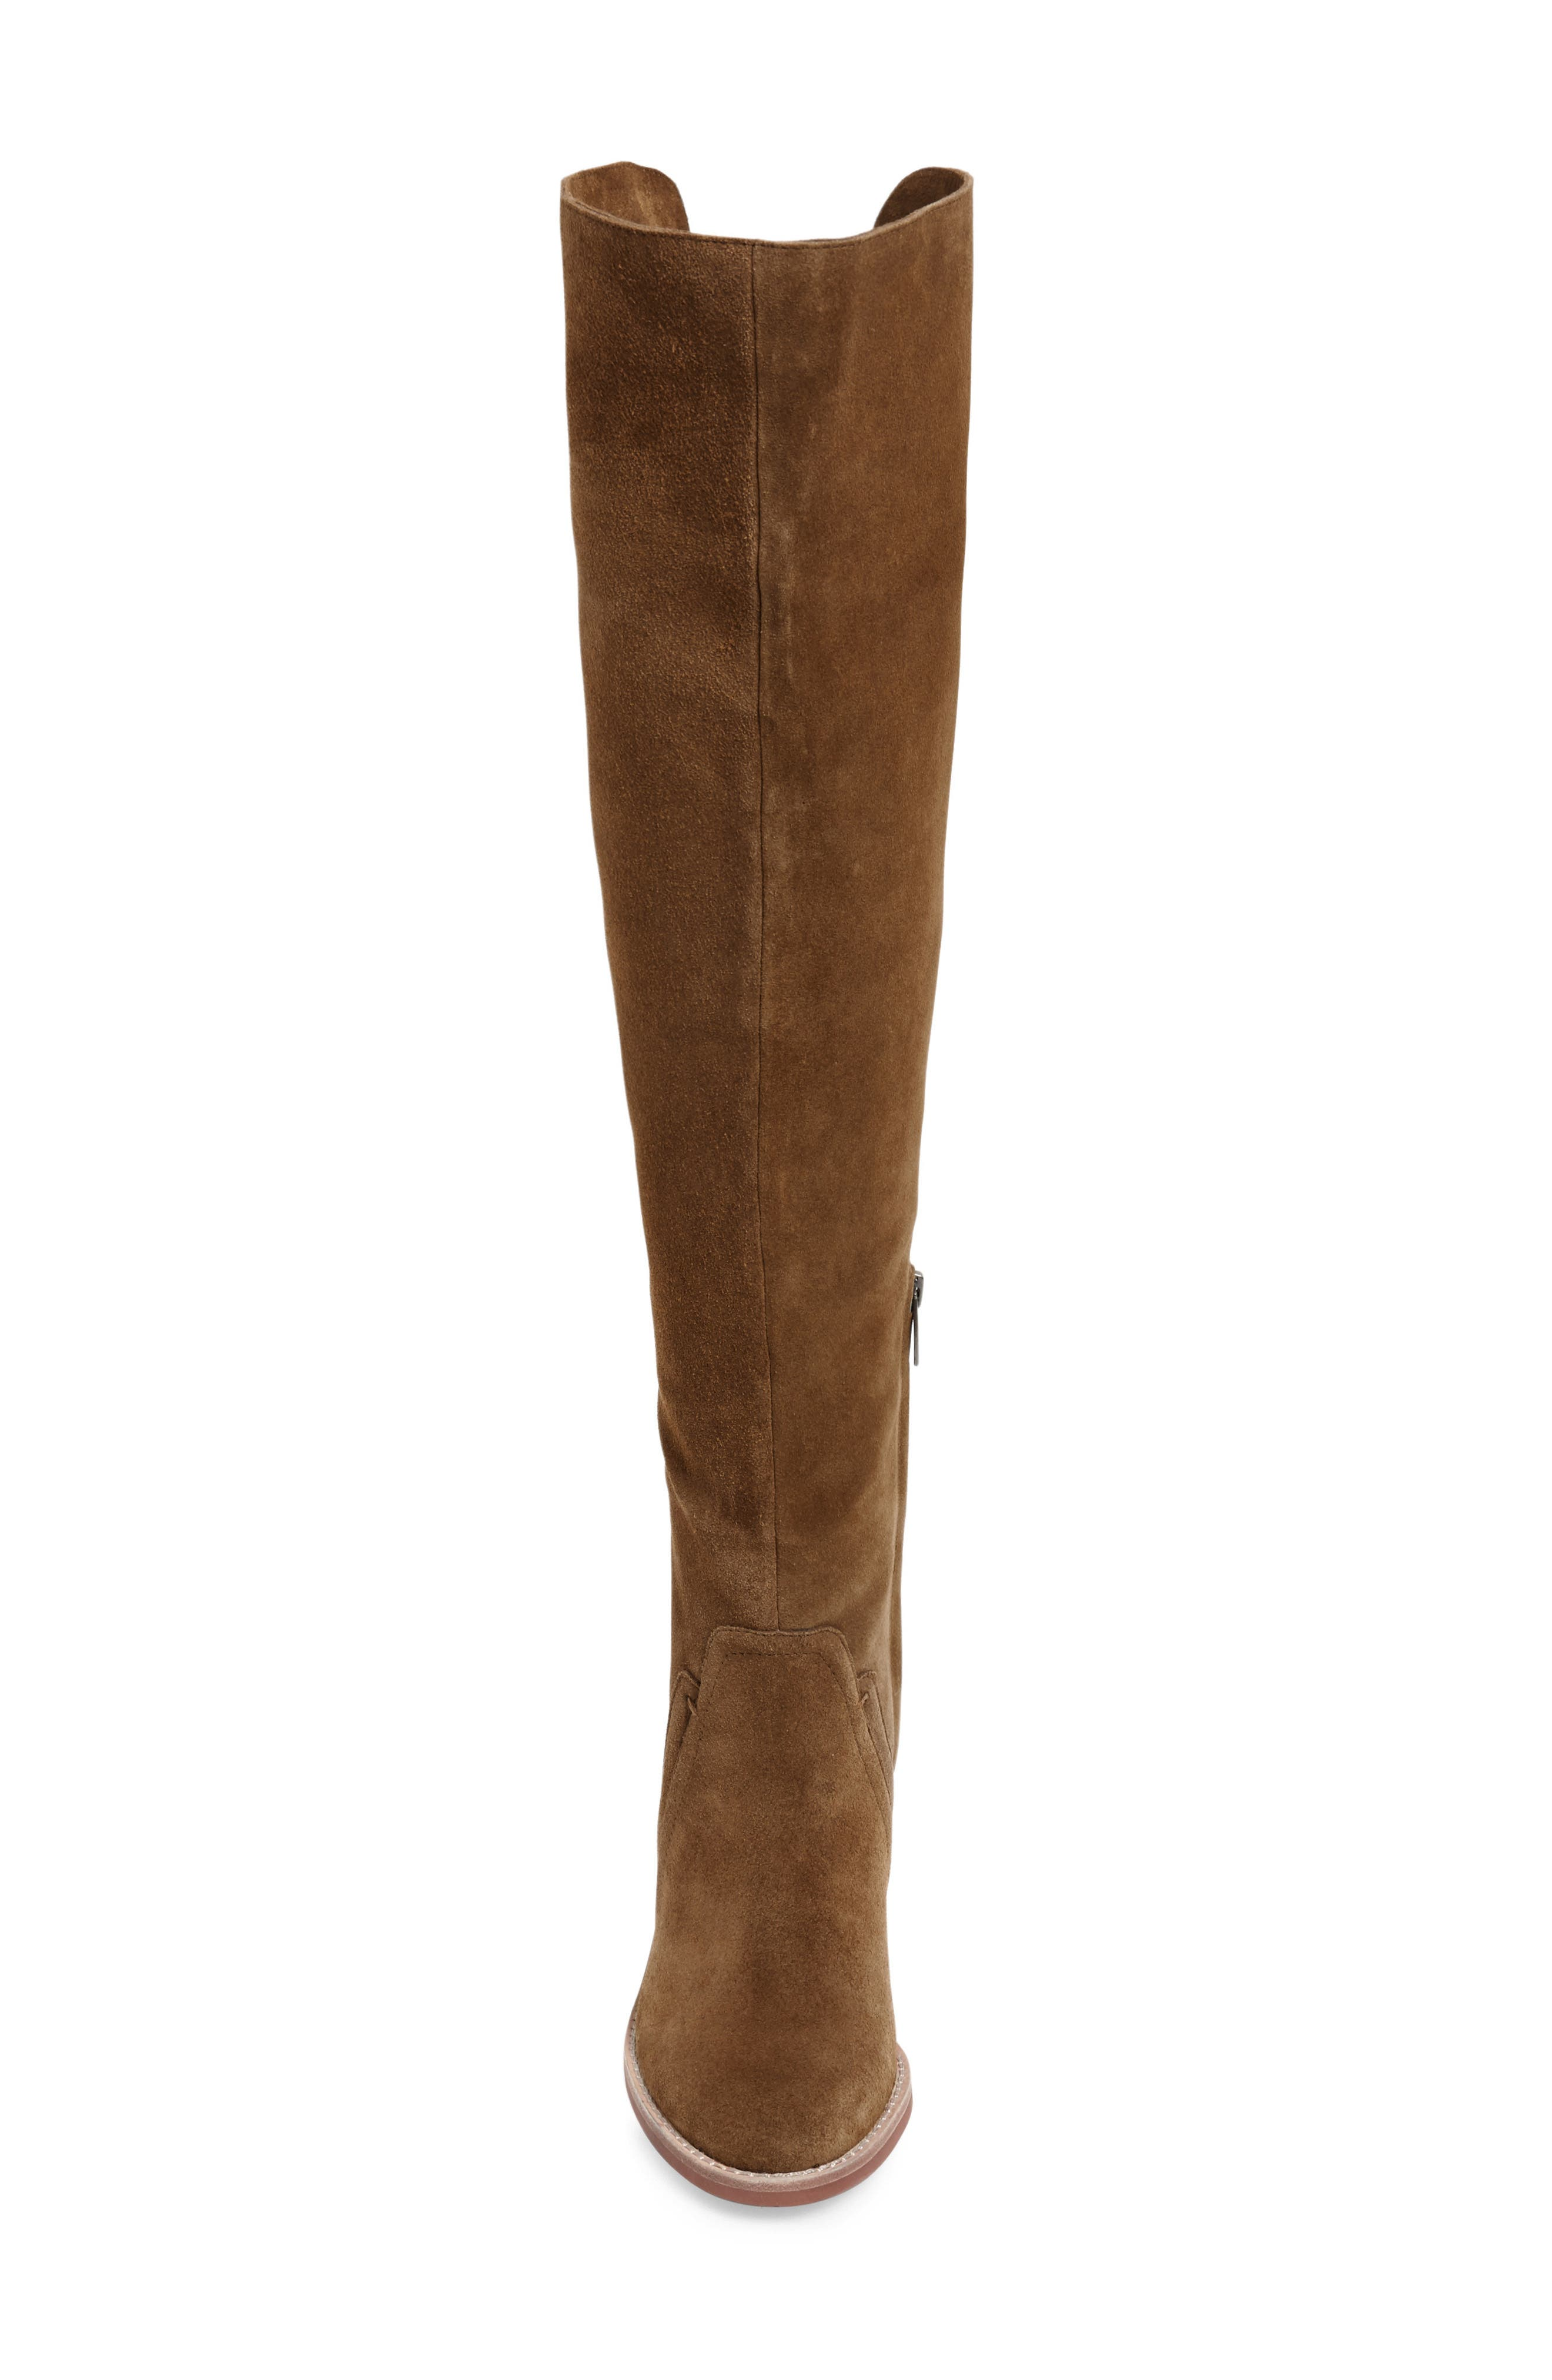 Alternate Image 3  - Vince Camuto 'Melaya' Over the Knee Boot (Women) (Nordstrom Exclusive)